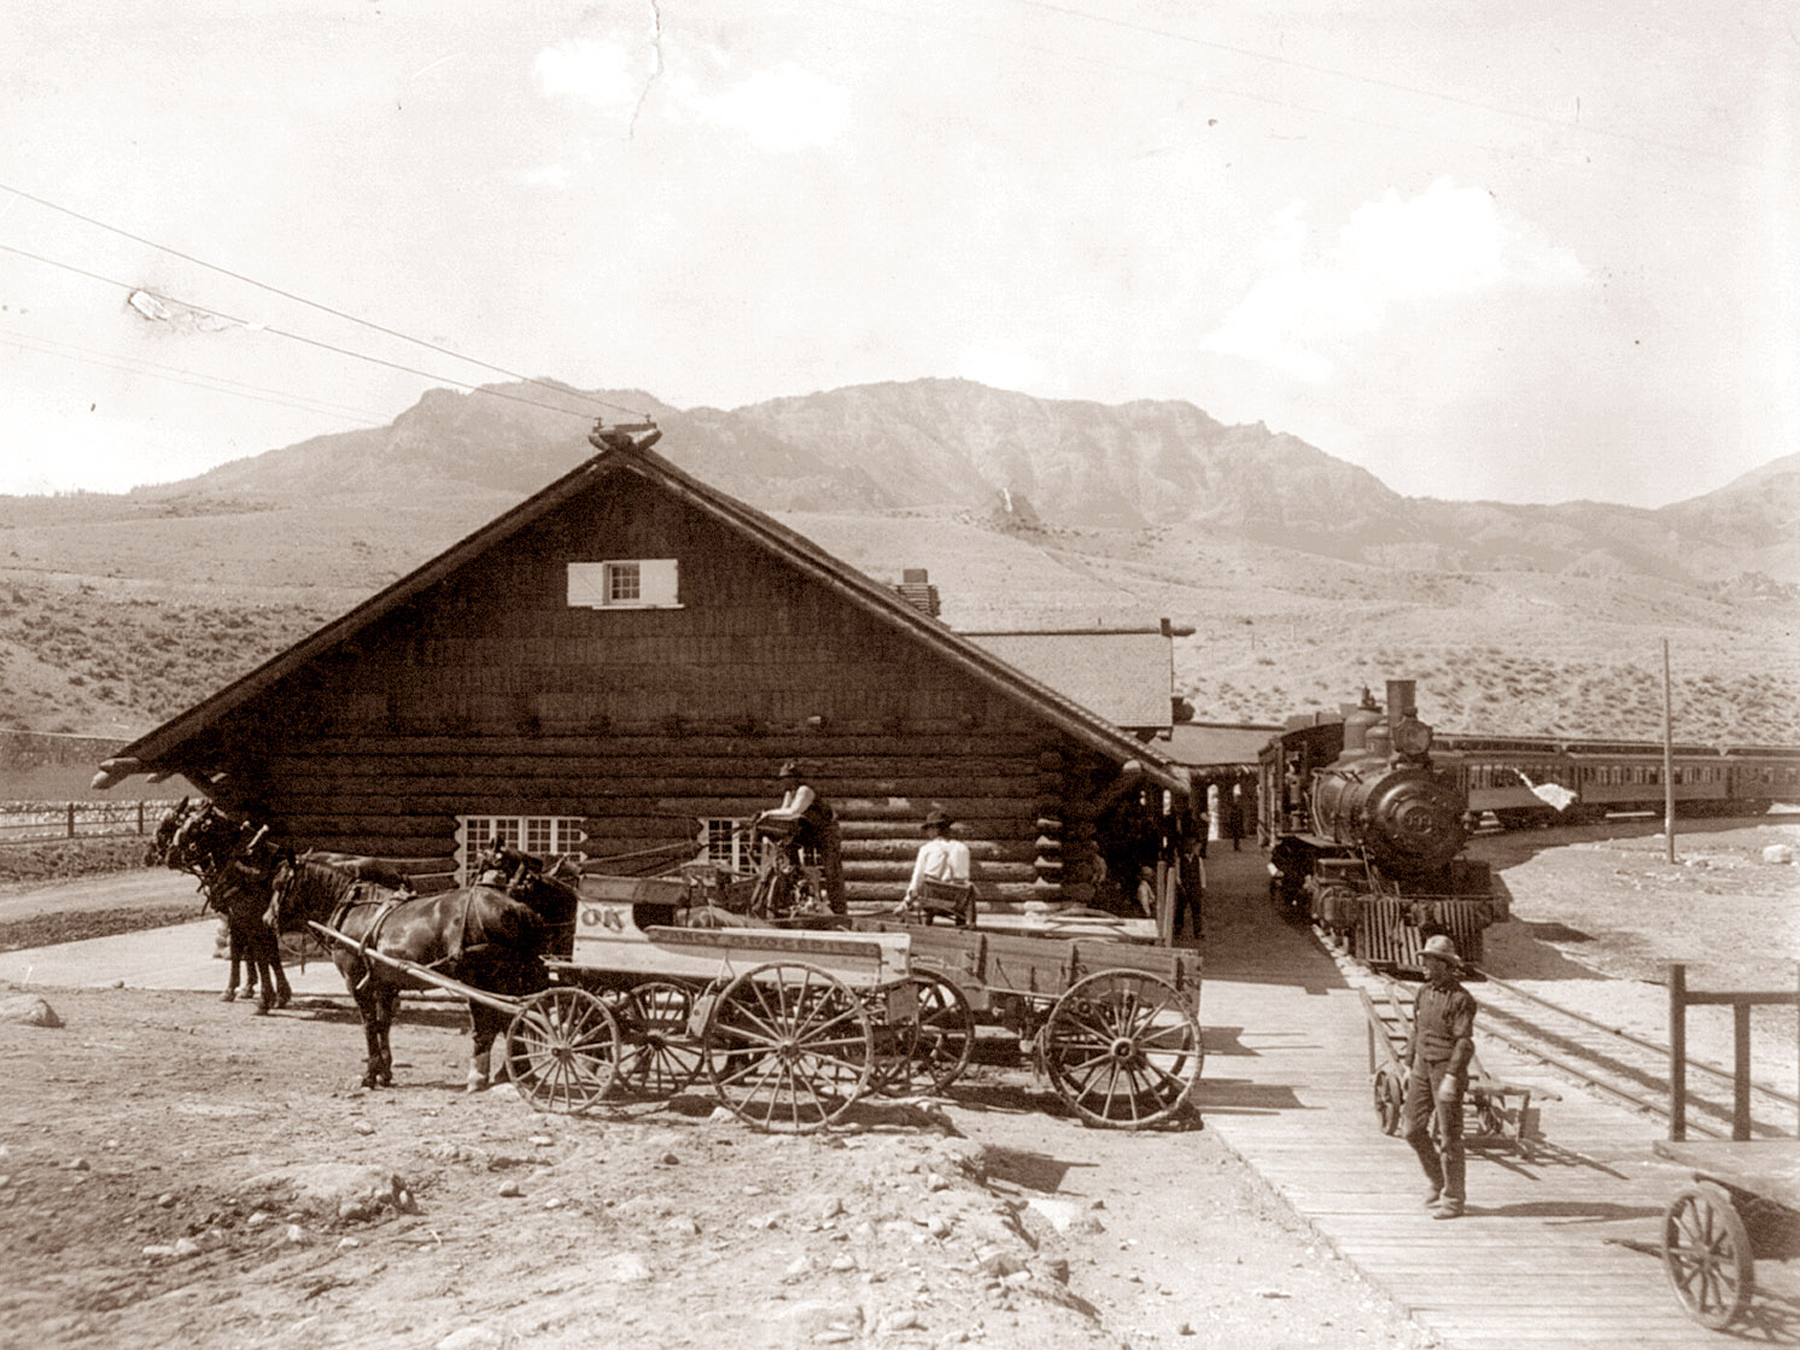 Old Railway Station: A locomotive and wagons parked at the old railway station in Gardiner (Montana Historical Society photo)